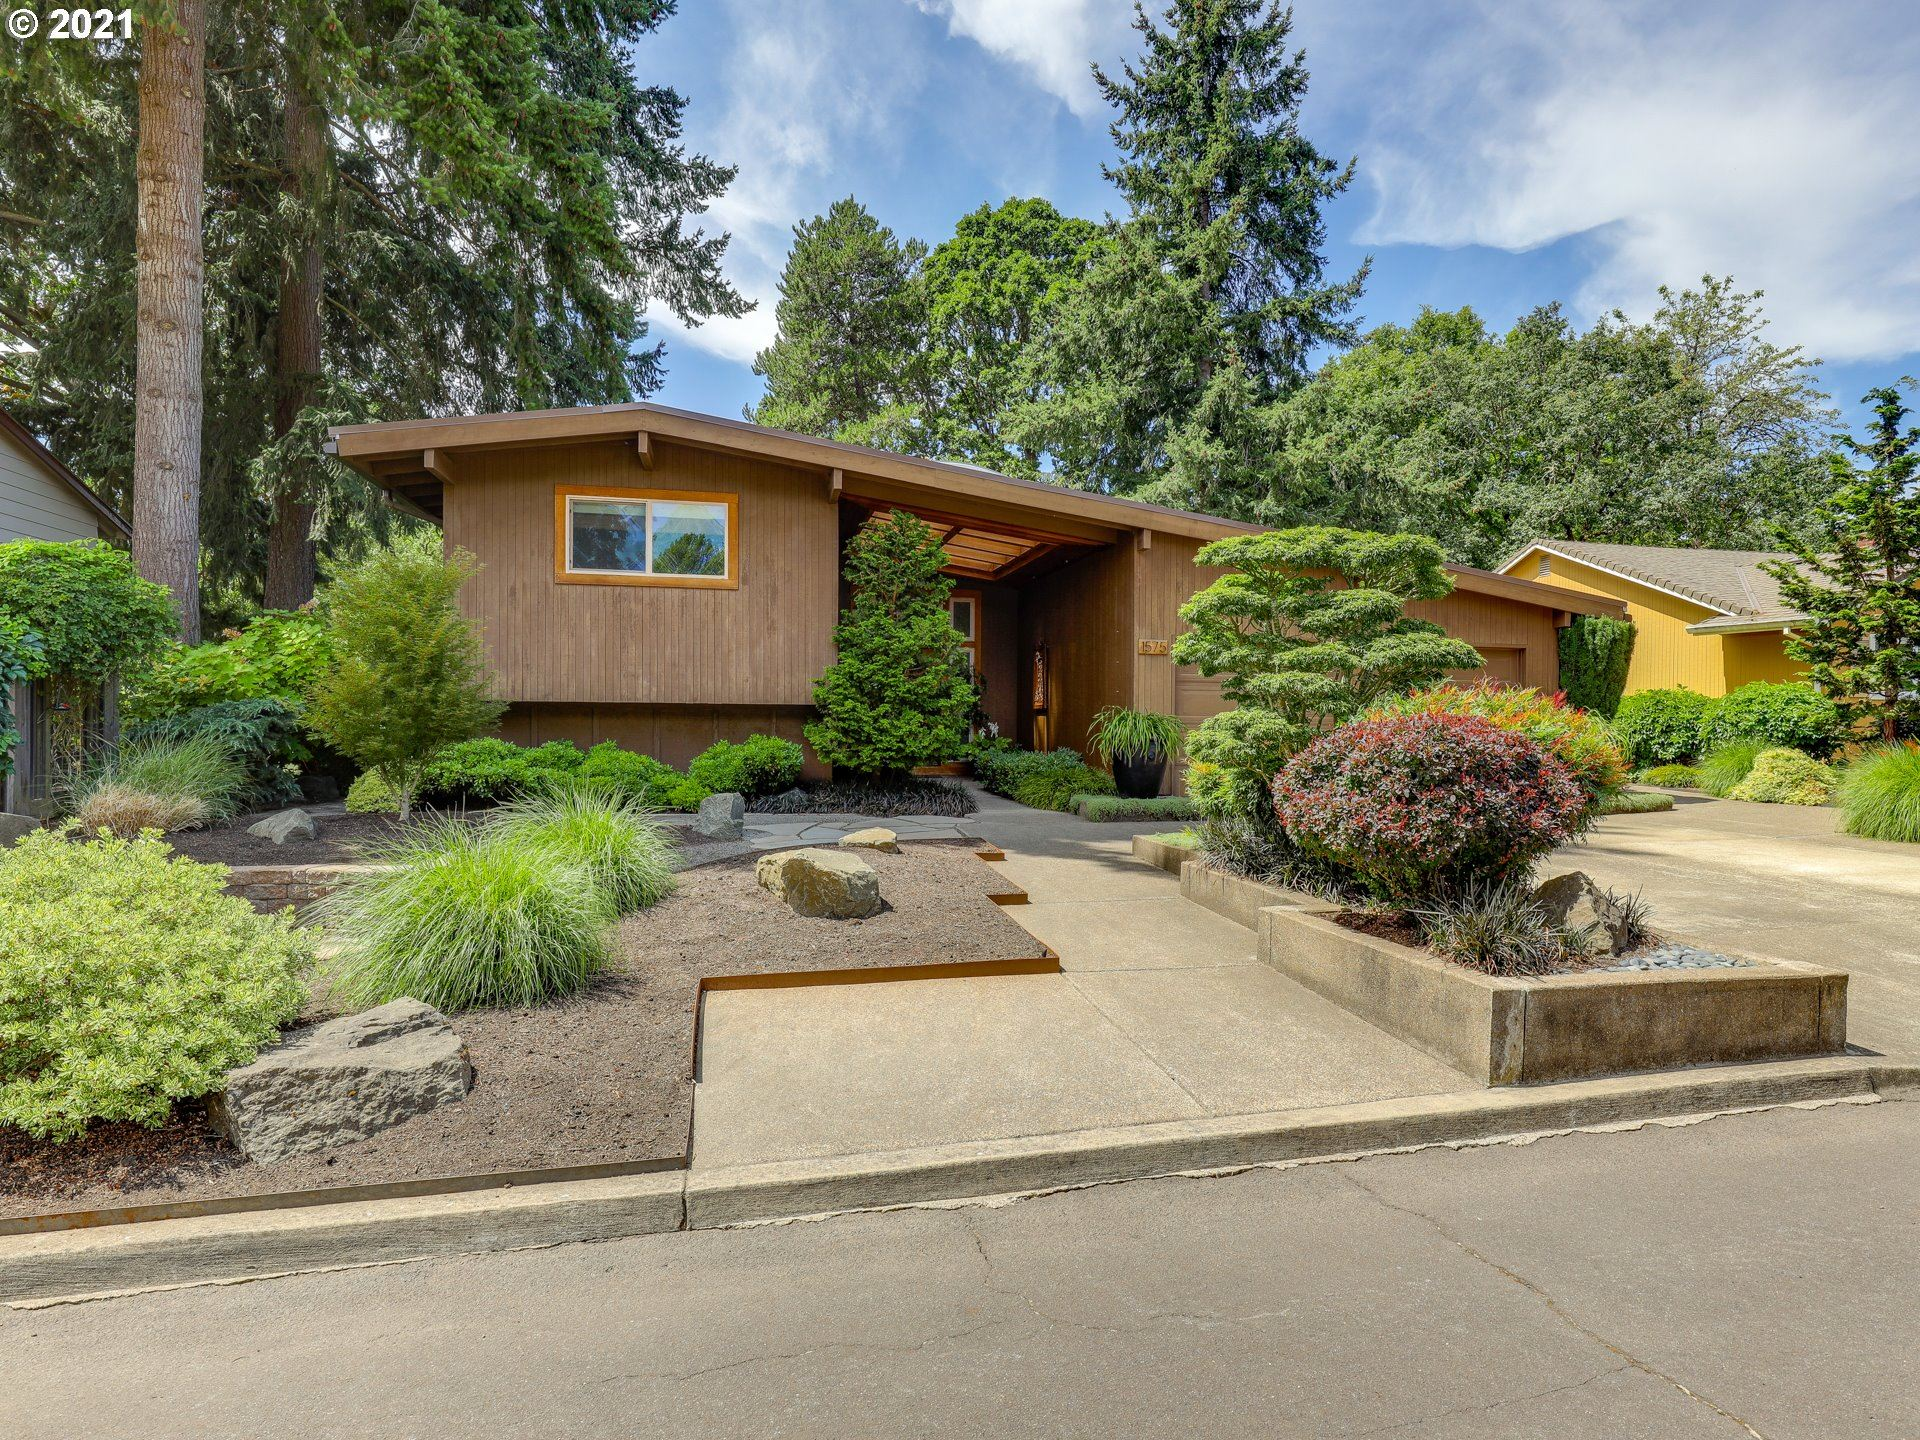 1575 NW 131ST AVE, Portland, OR 97229 - MLS#: 21252605